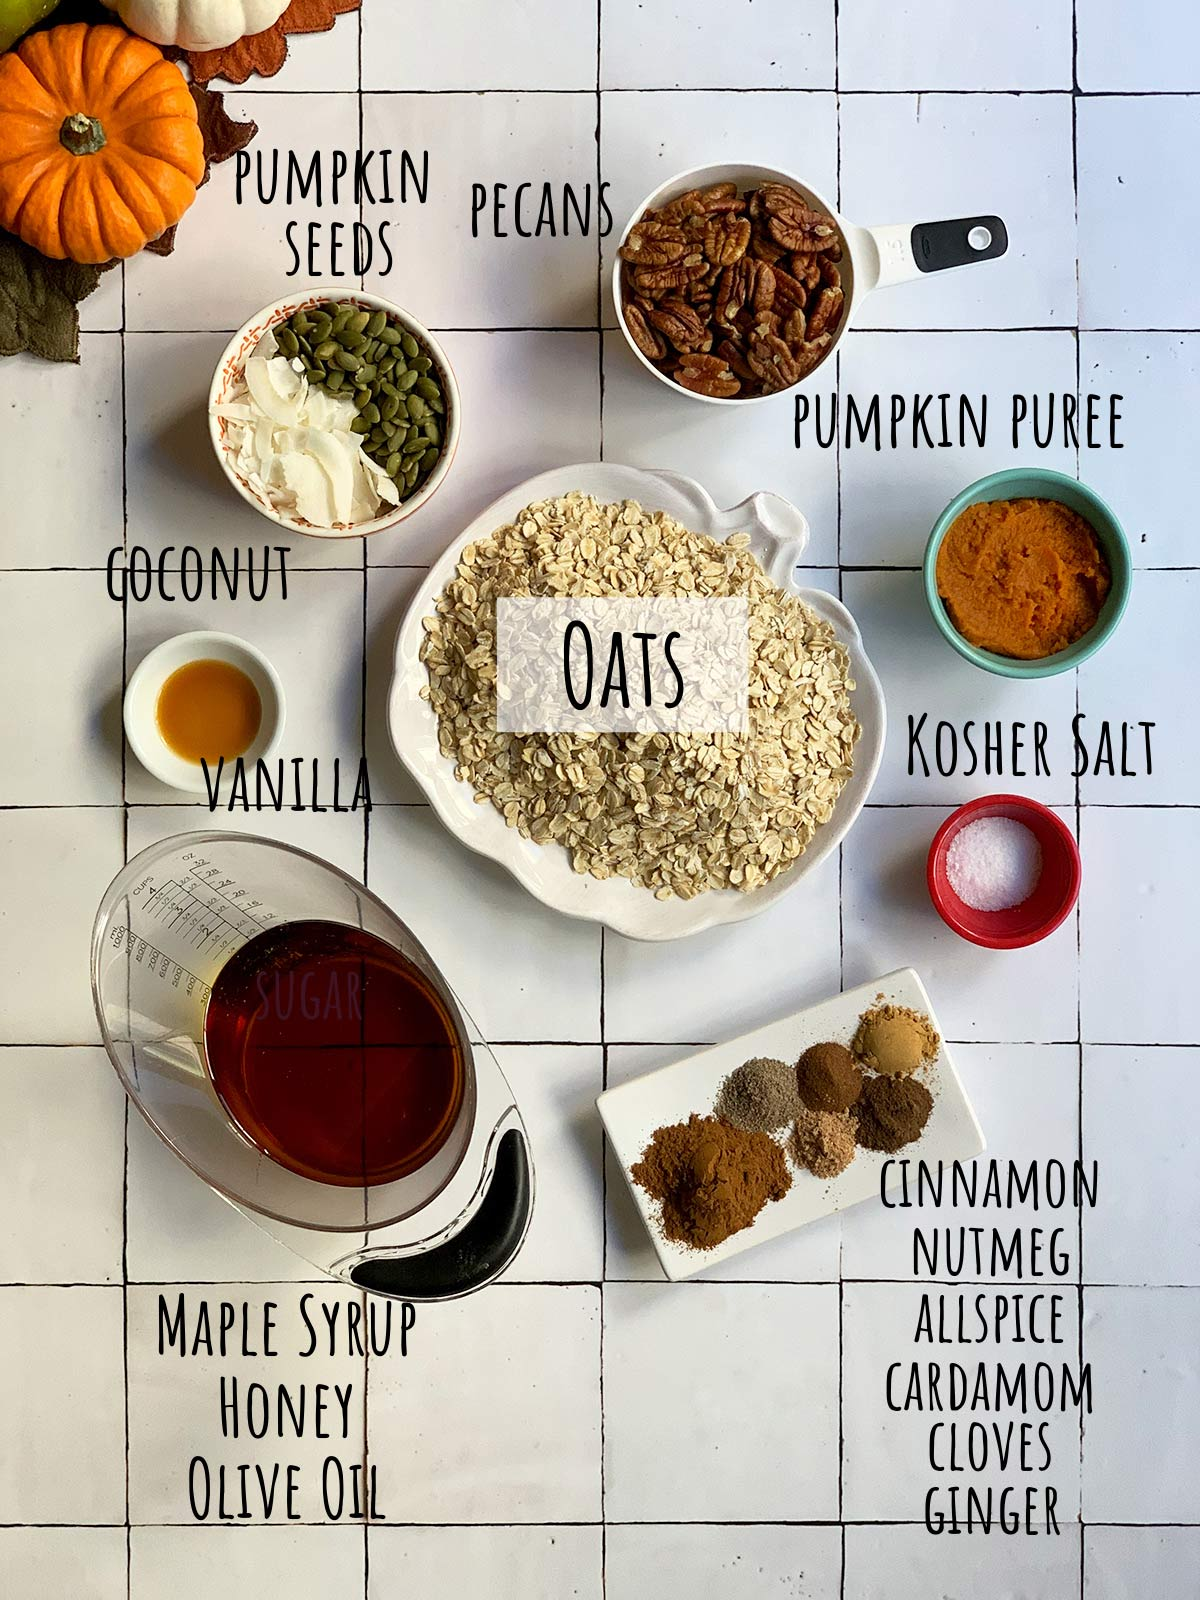 all ingredients for pumpkin pie granola on tile background with labels for each one